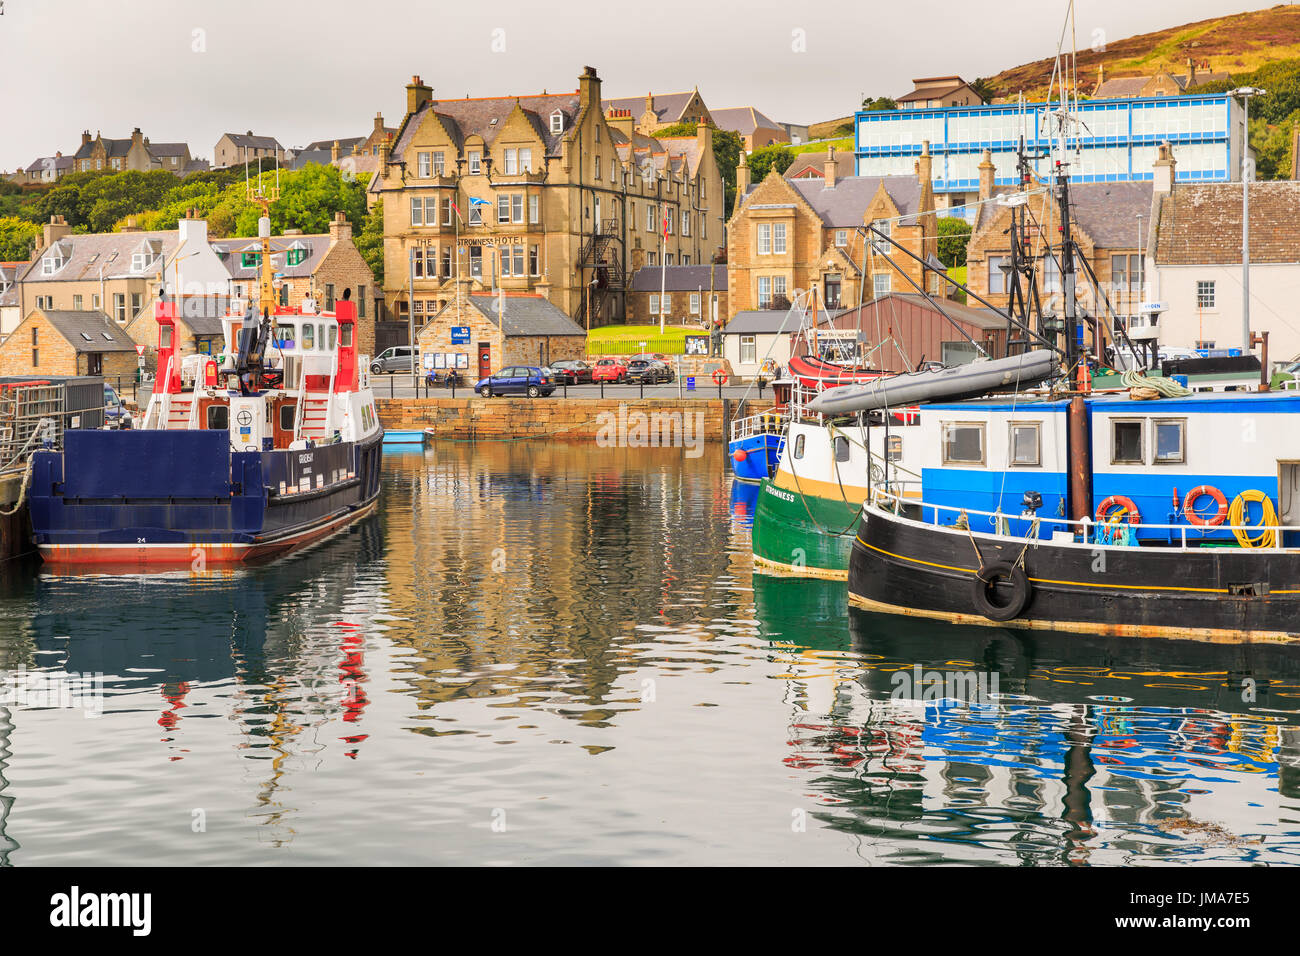 Fishing boats moored in the harbour. Stromness, Orkney, Scotland. - Stock Image